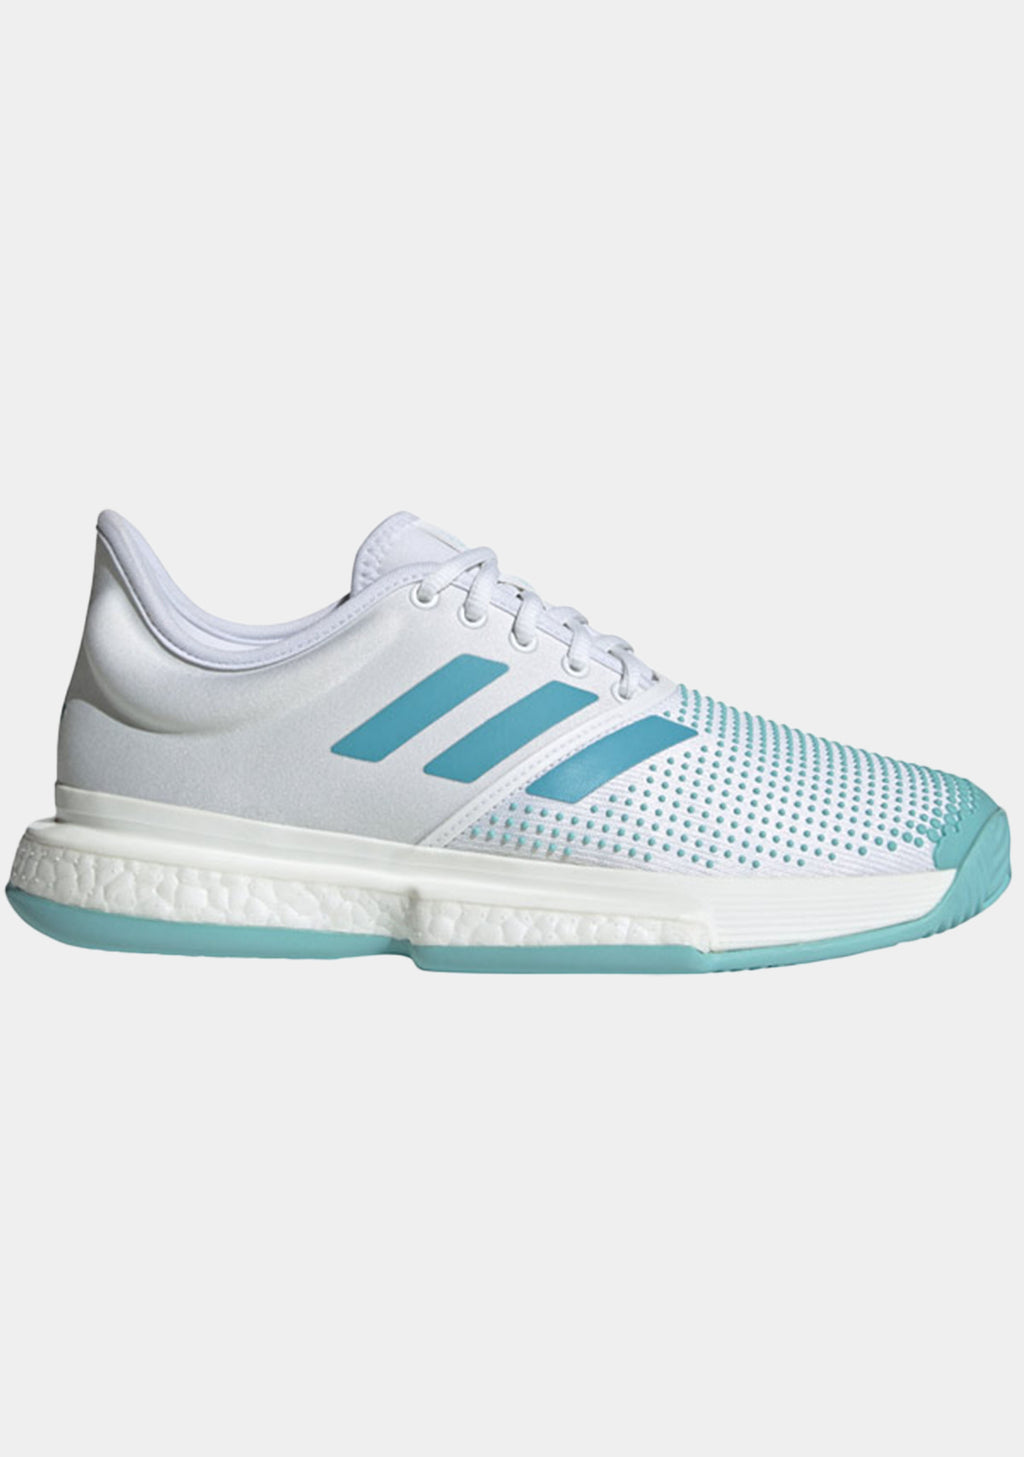 ADIDAS WOMENS SOLECOURT BOOST PARLEY TENNIS SHOES <BR> G26301